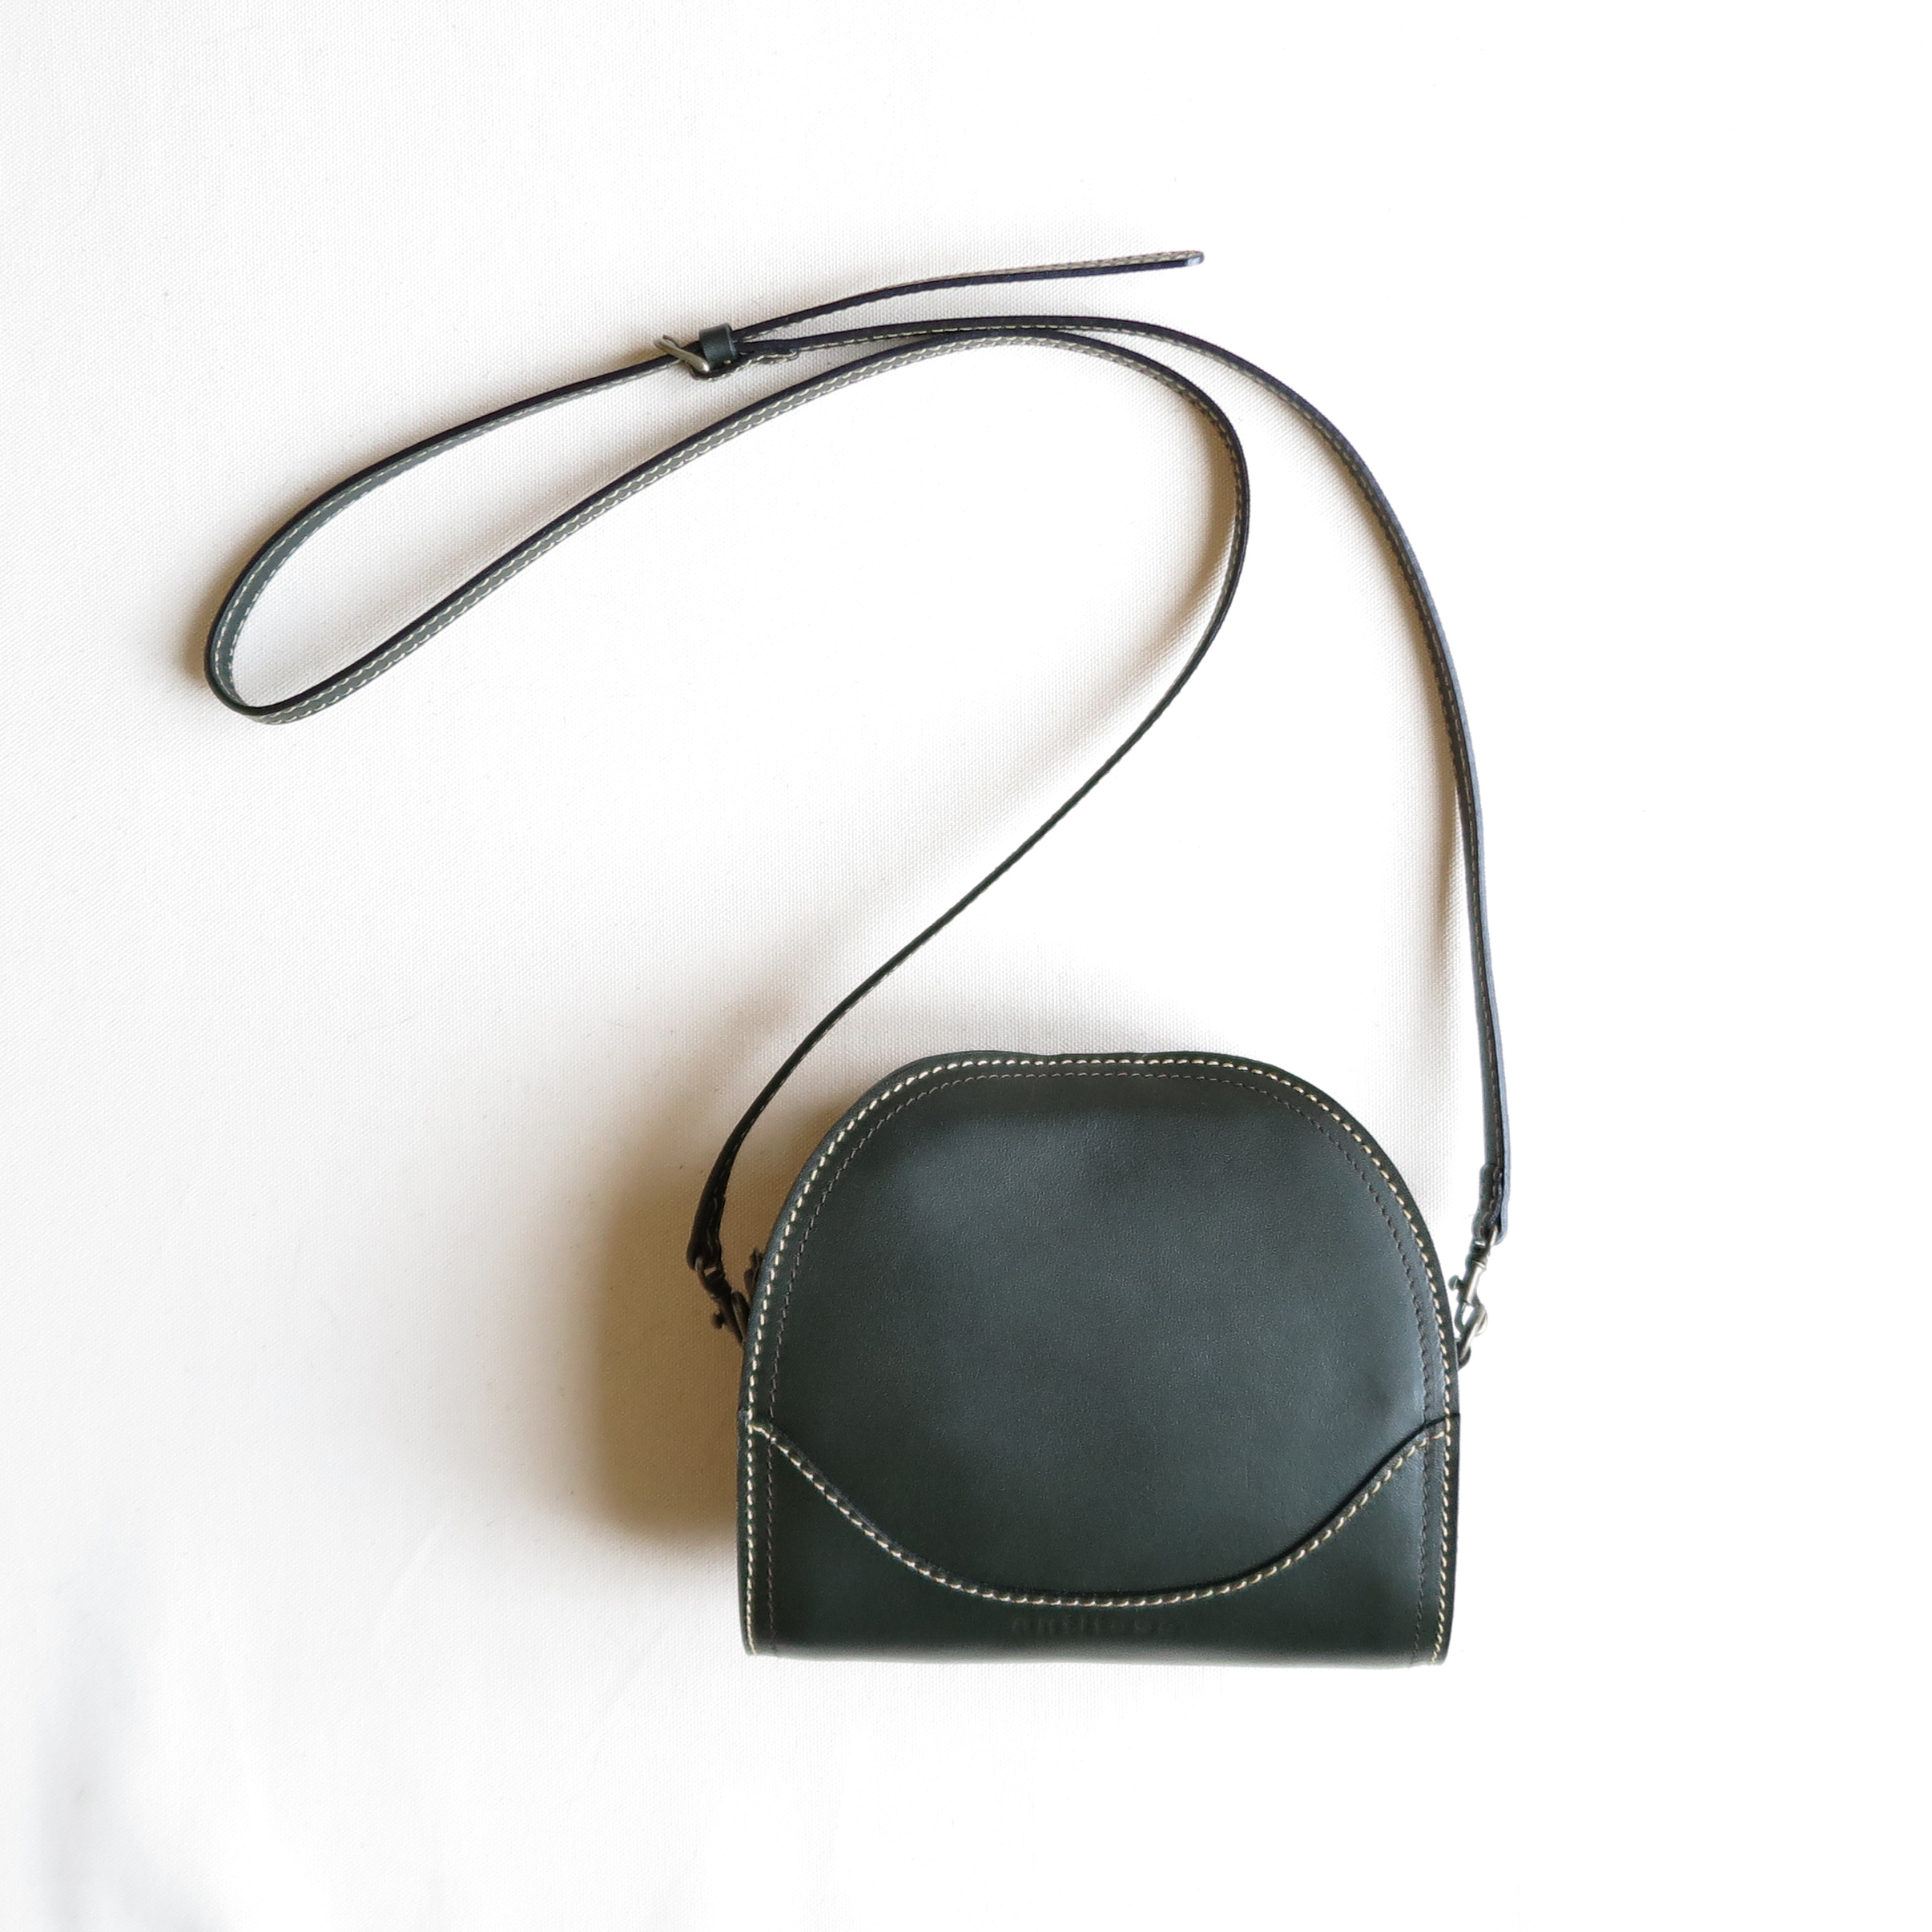 Vague pochette mini D.GREEN